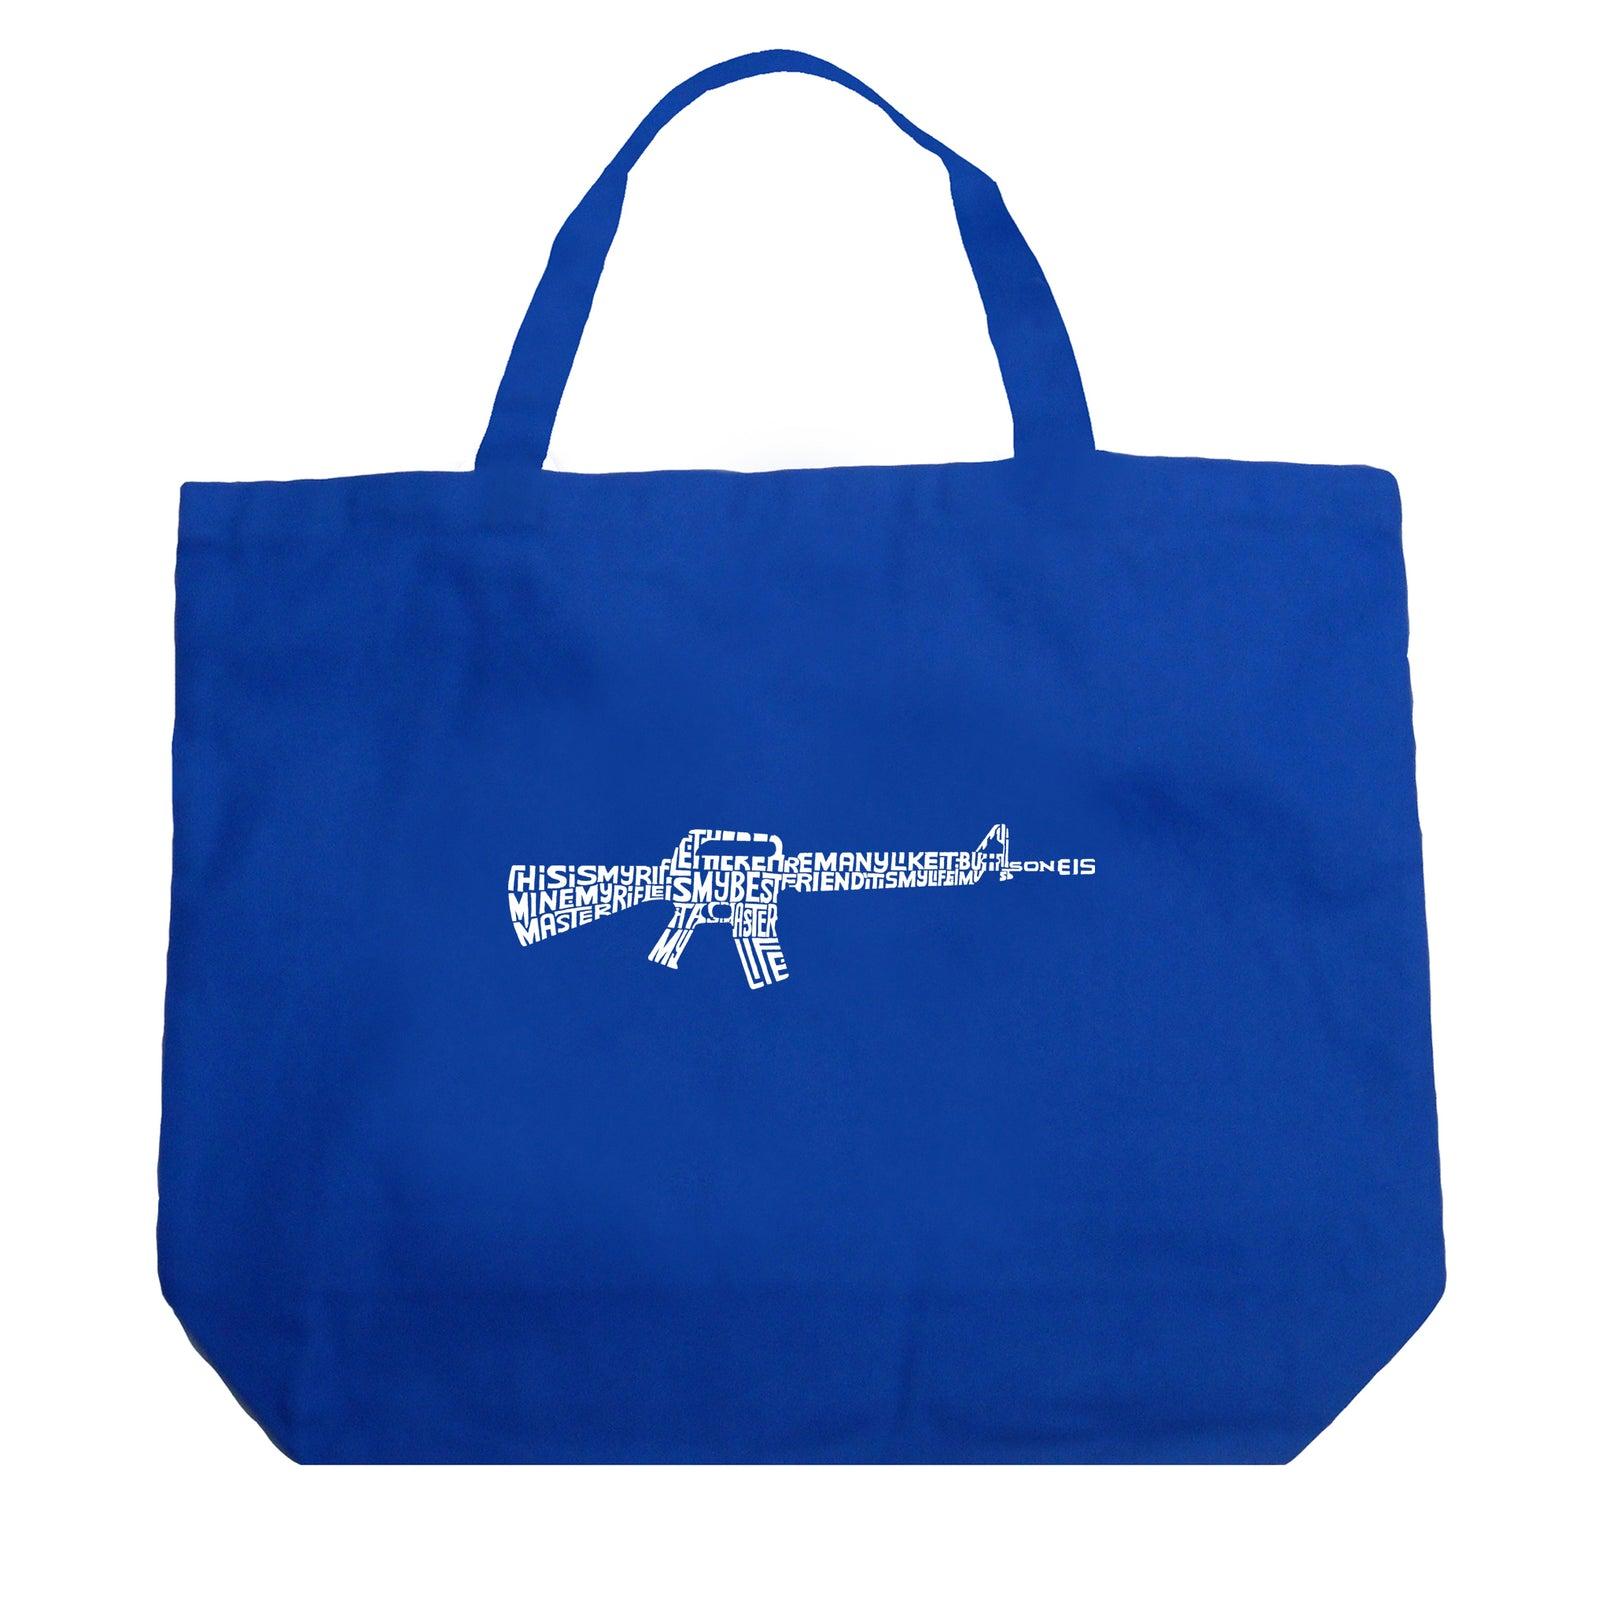 Large Tote Bag - RIFLEMANS CREED